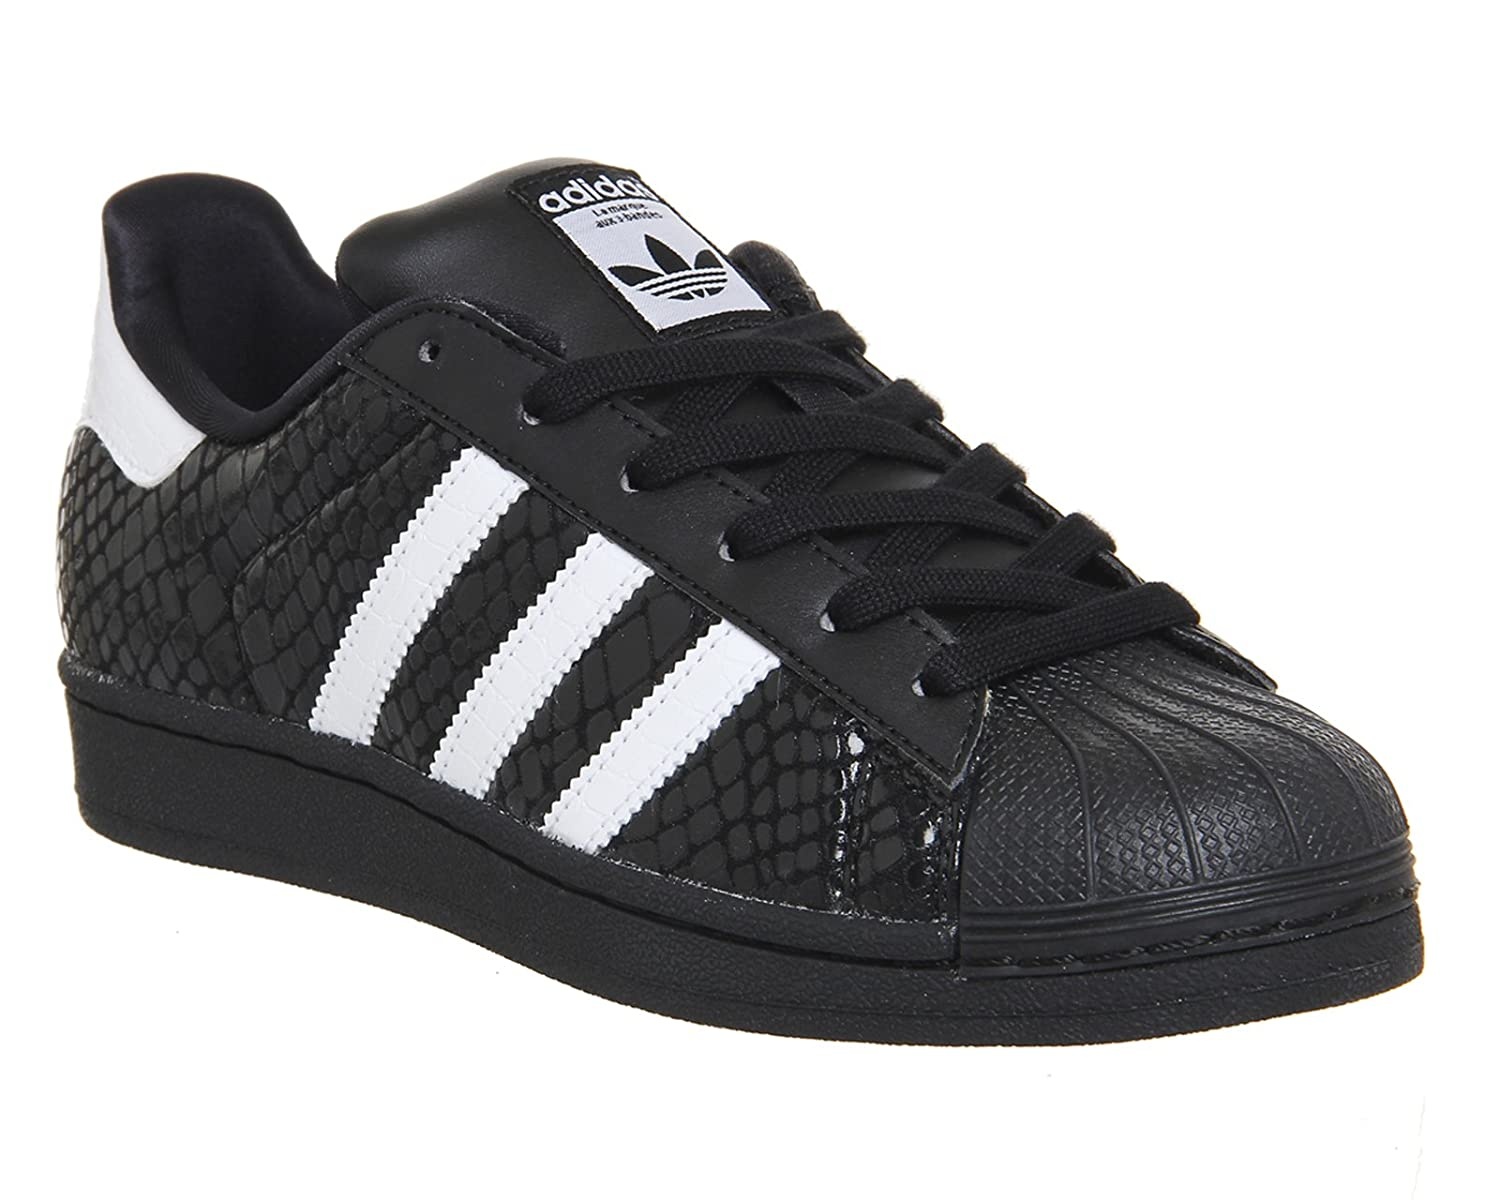 adidas superstar black white snake